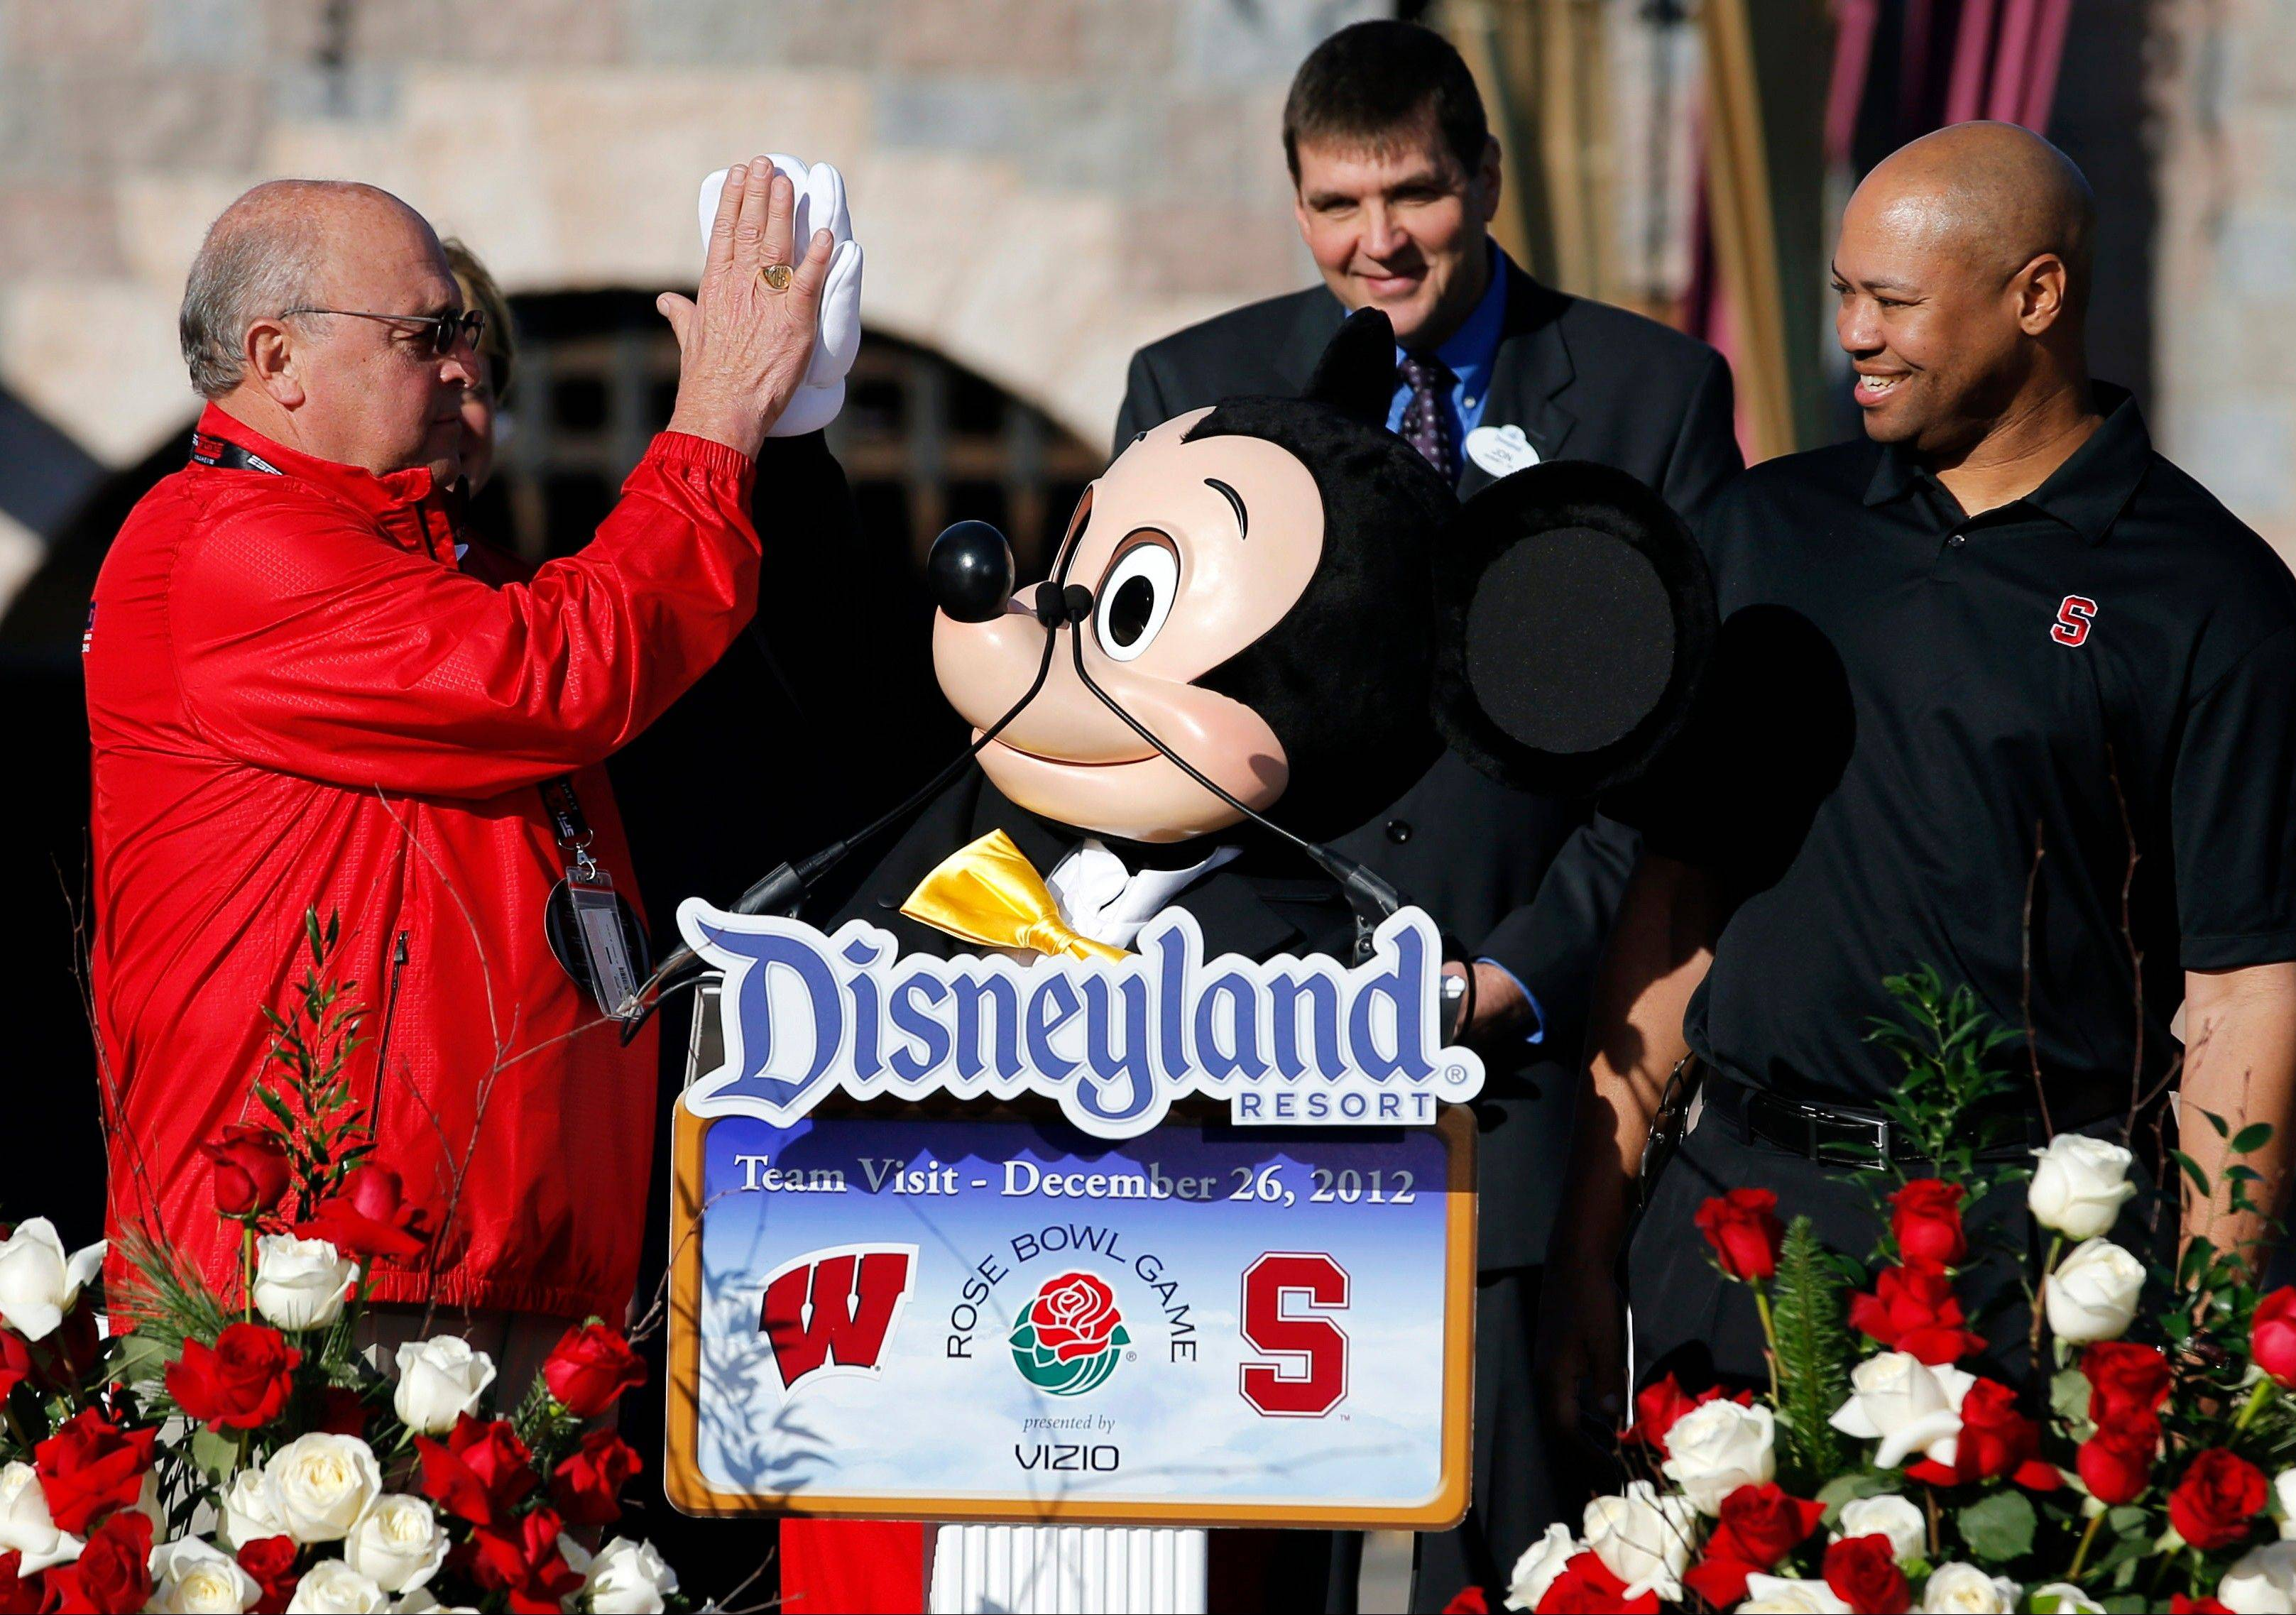 Wisconsin athletic director Barry Alvarez, left, gets a high-five from Mickey Mouse as Stanford coach David Shaw, right, watches. Alvarez will coach the Badgers in today's Rose Bowl against the Cardinal in Pasadenda, Calif.